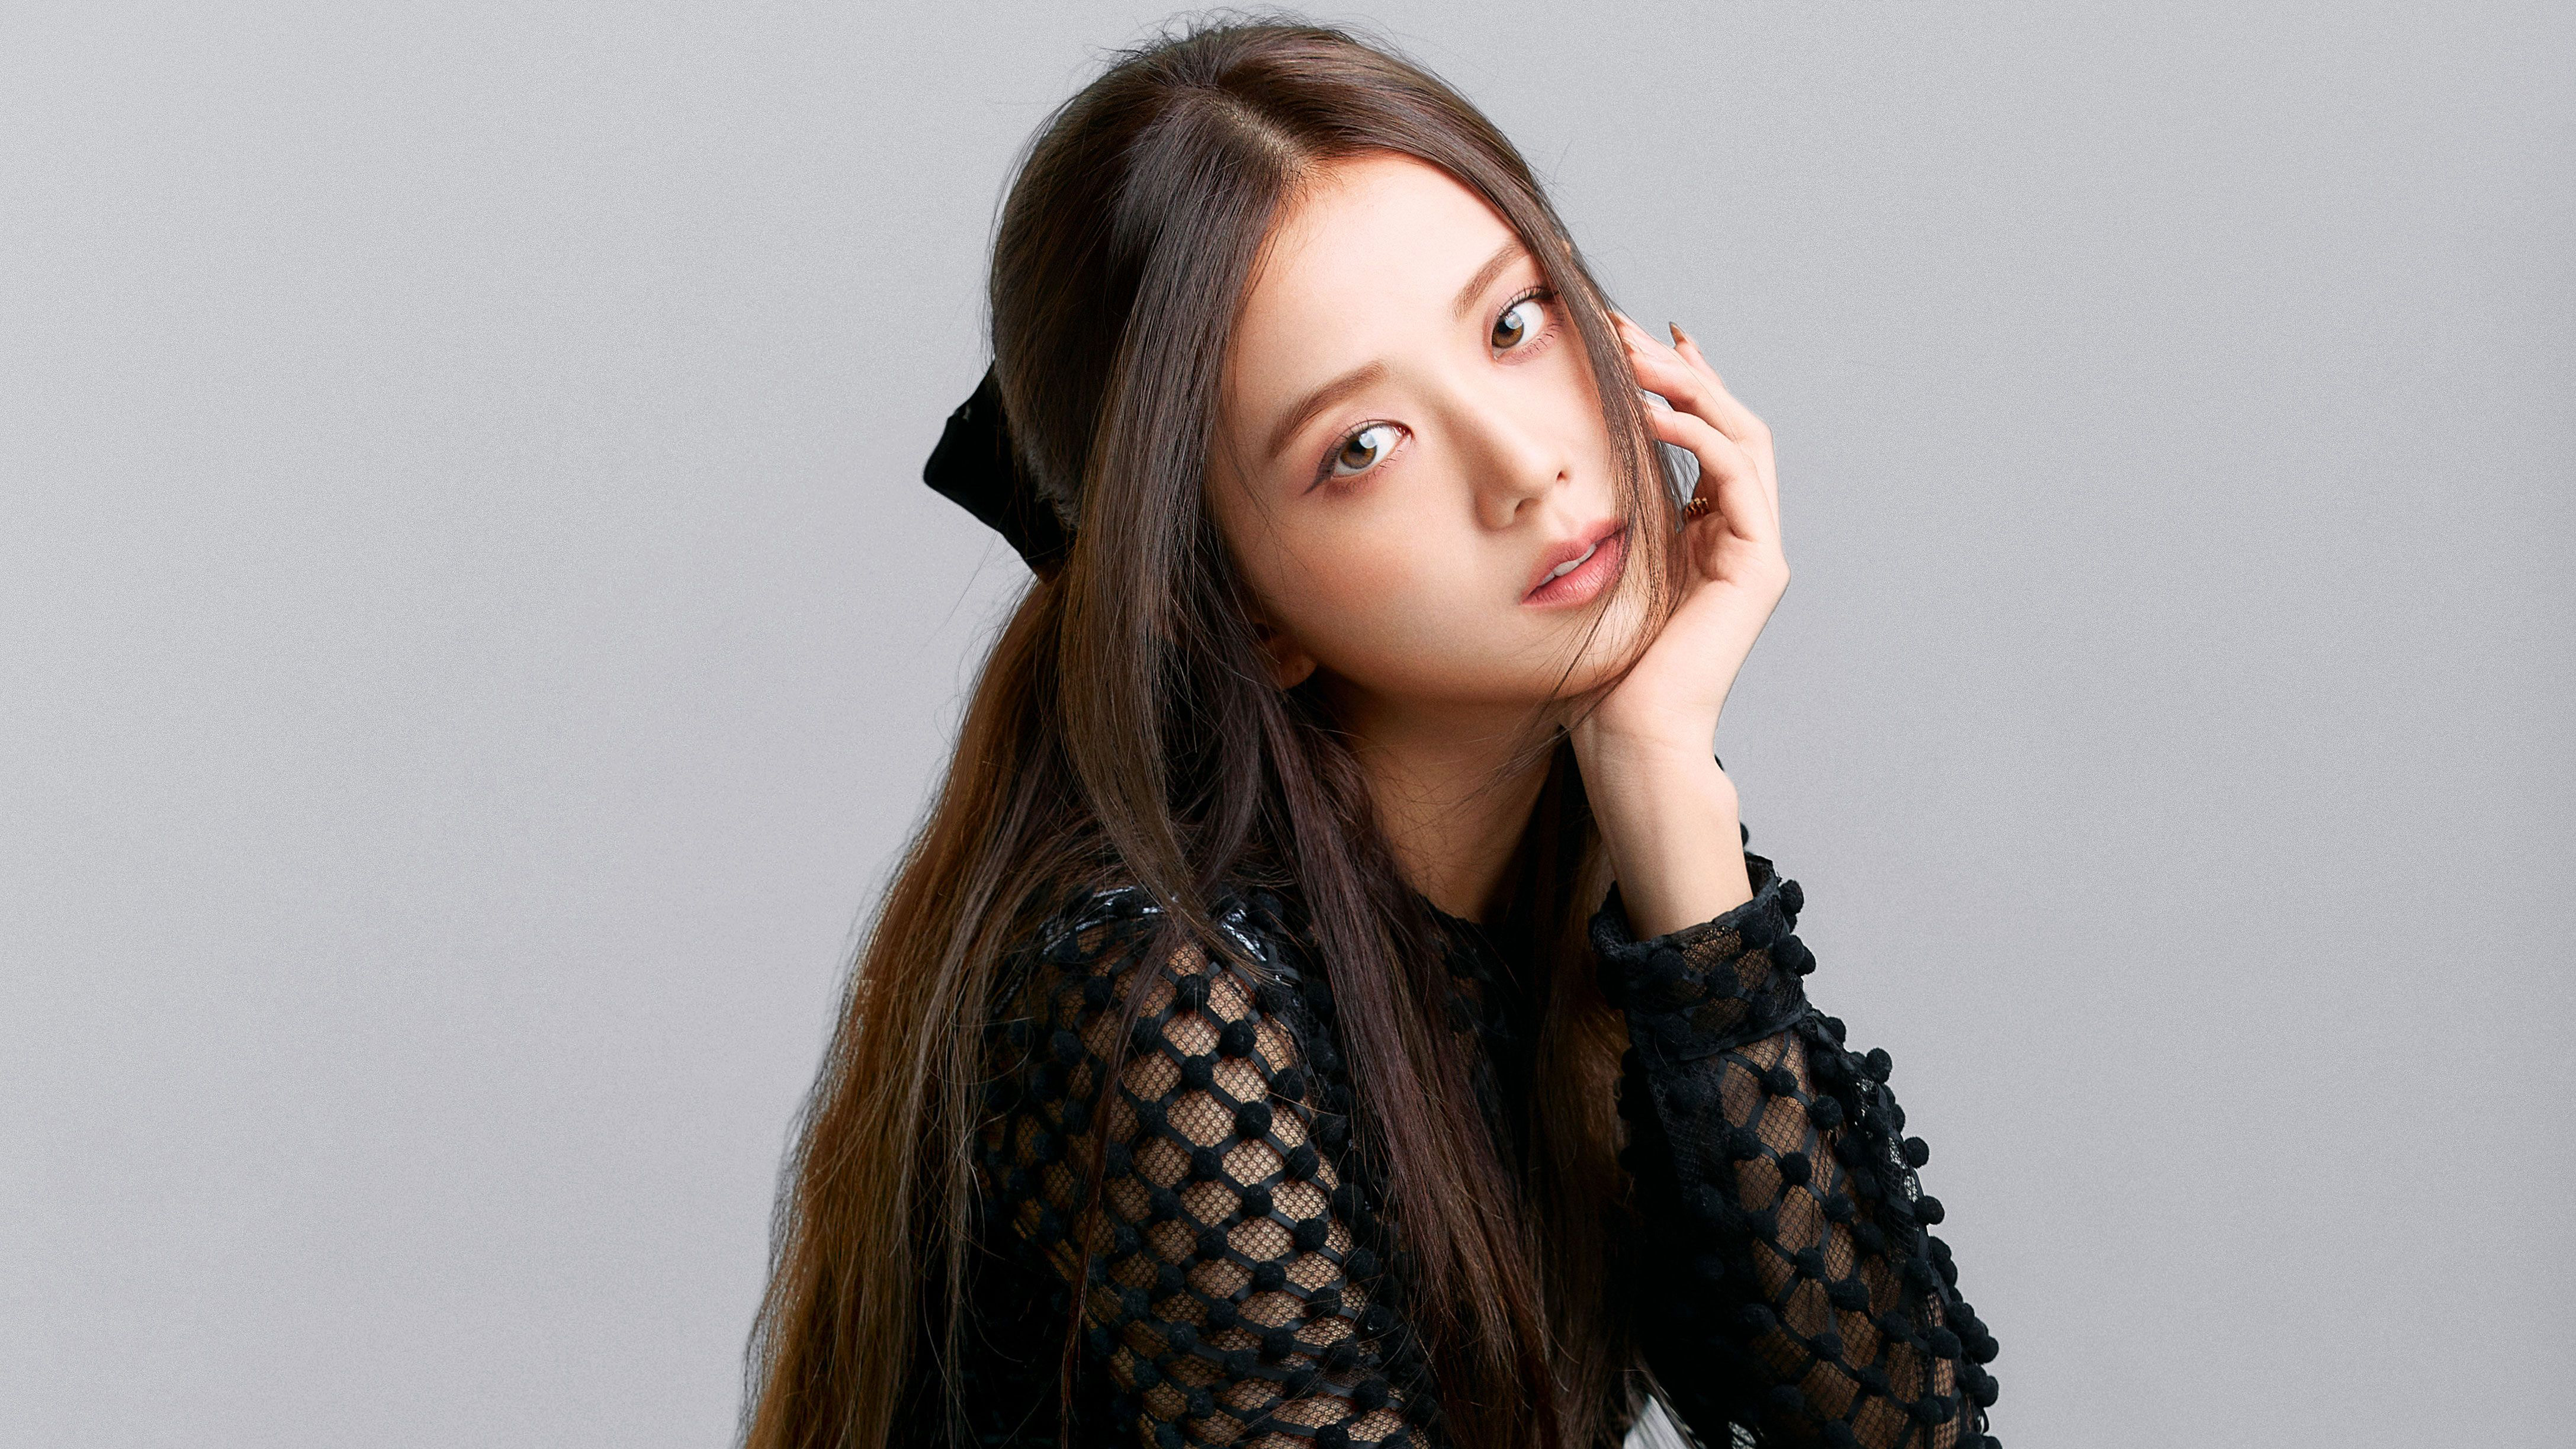 1366x768 Jisoo Blackpink 4k 1366x768 Resolution Hd 4k Wallpapers Images Backgrounds Photos And Pictures